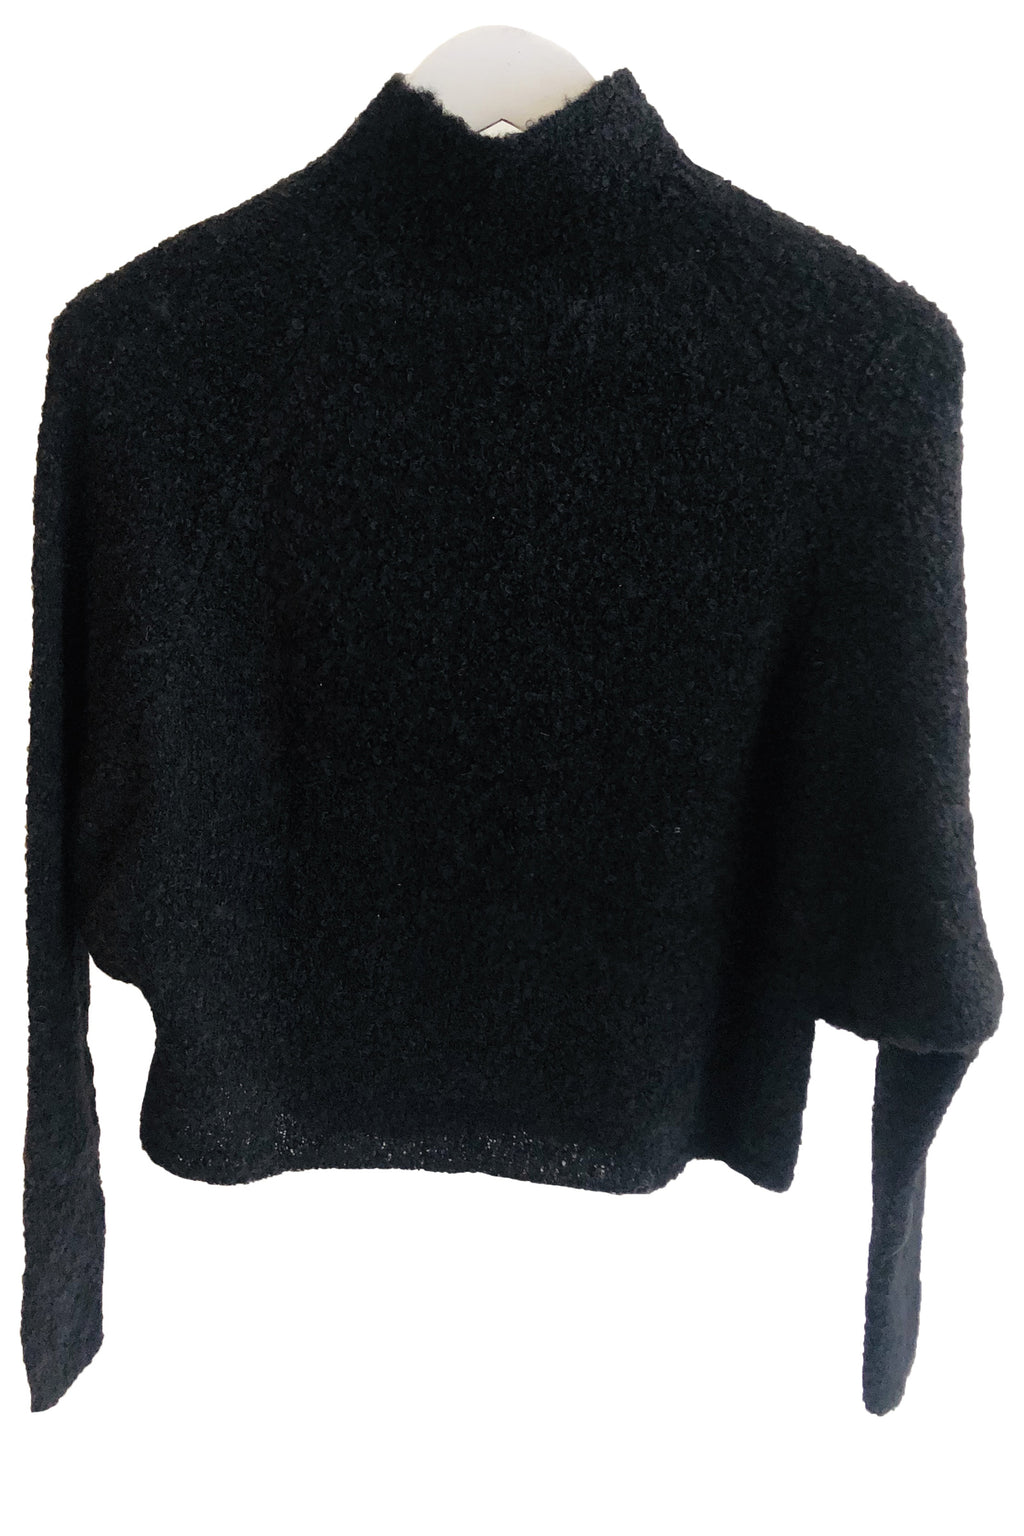 Atelier Delphine Alpaca Savannah Top in Black